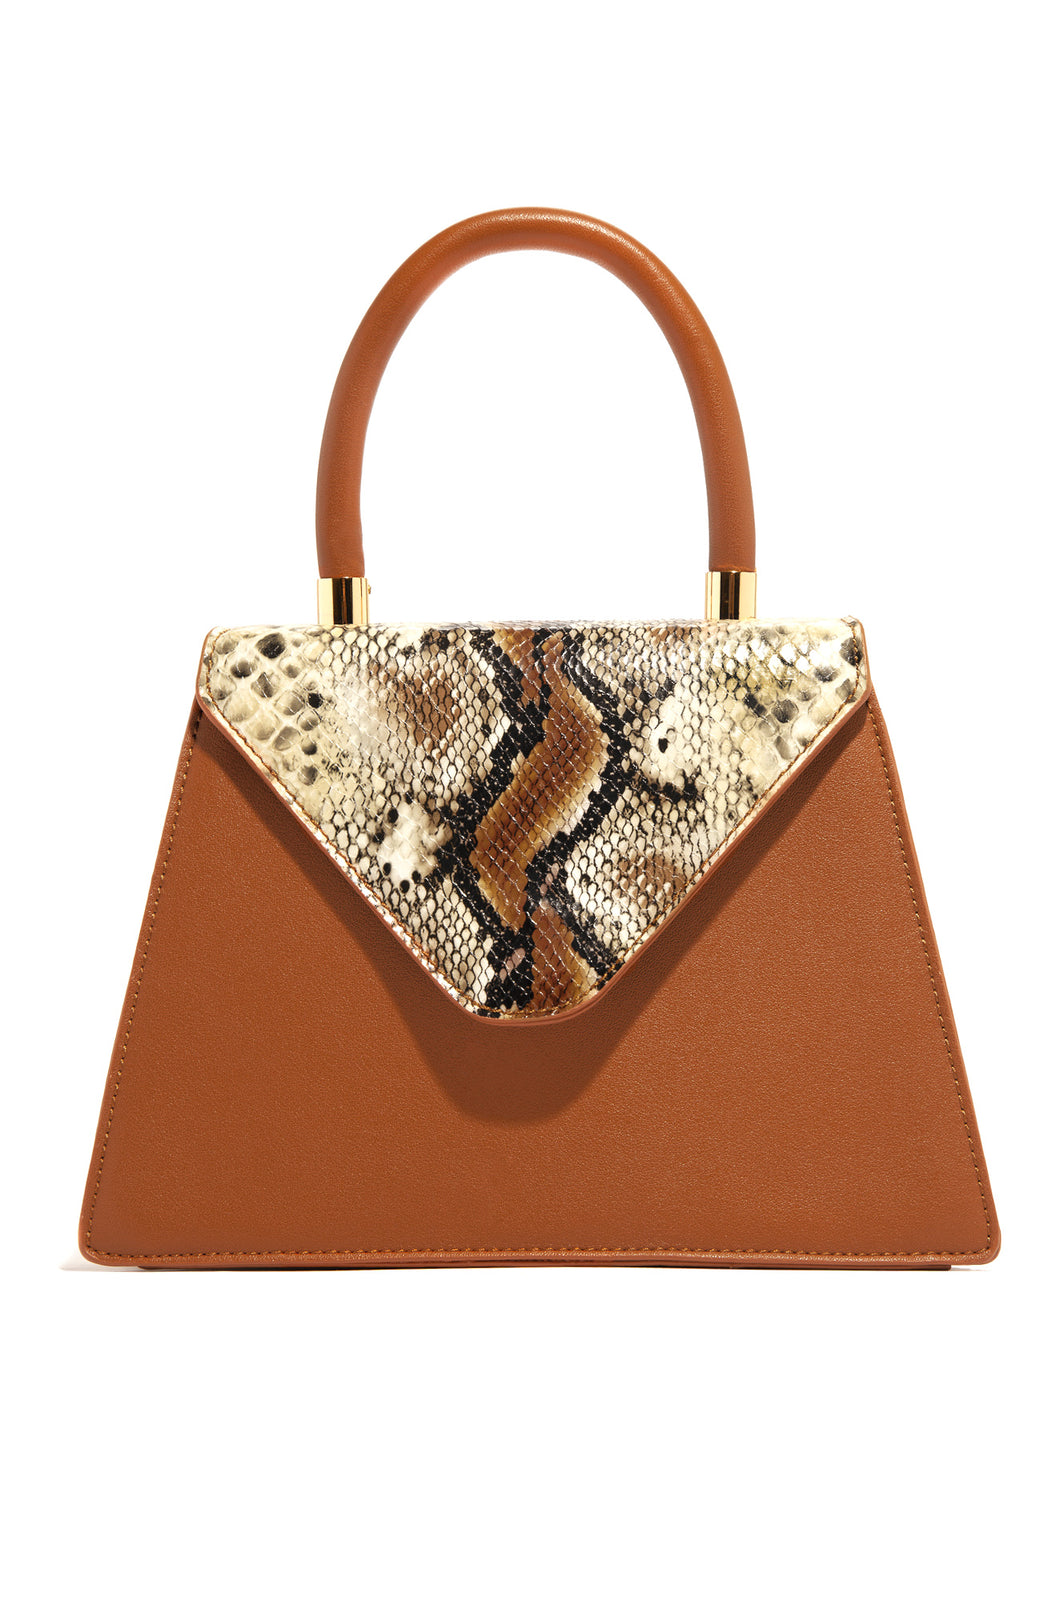 Sinfully Yours Bag - Tan Snake